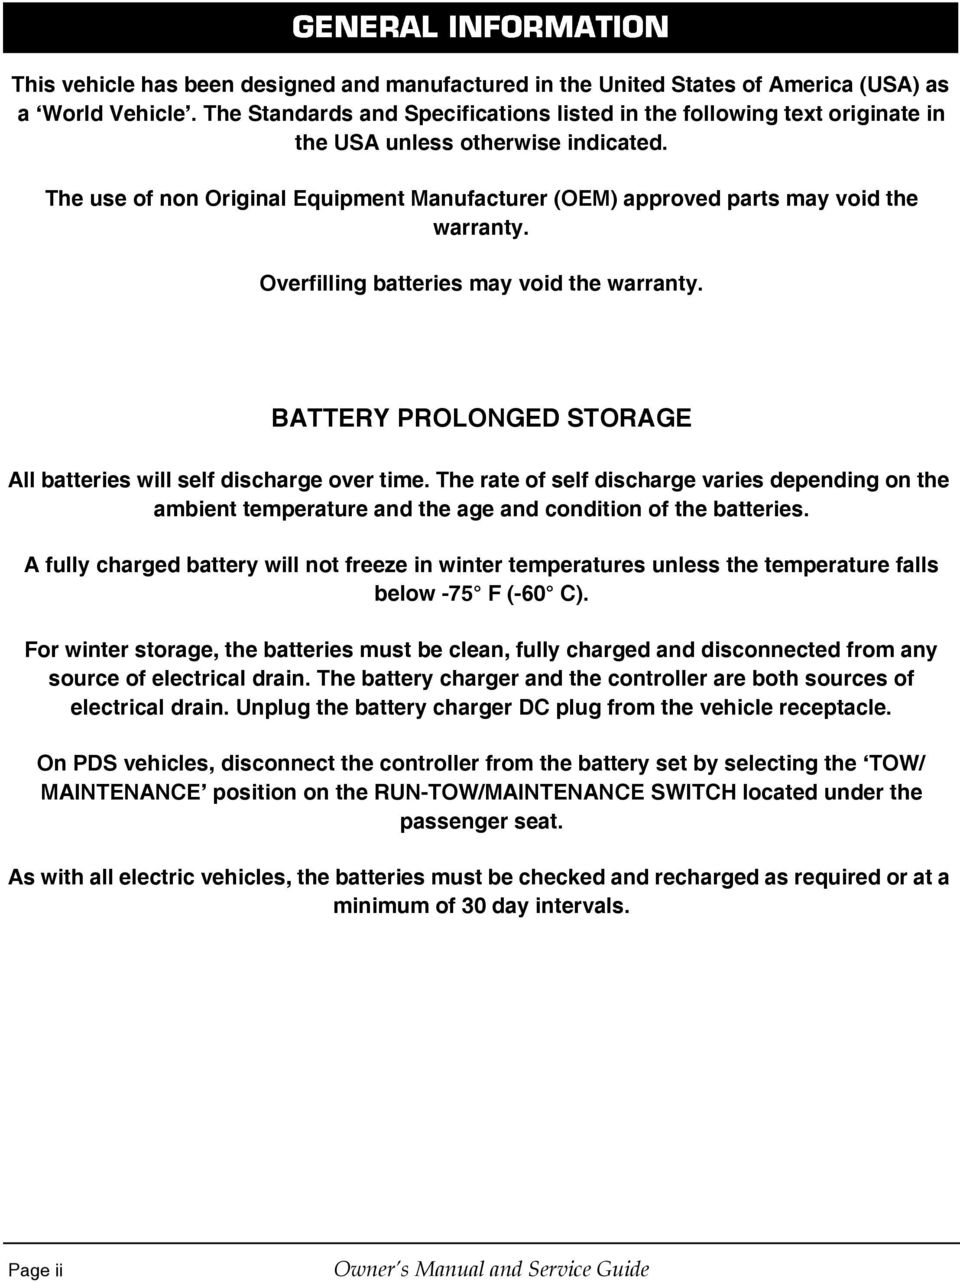 The use of non Original Equipment Manufacturer (OEM) approved parts may void the warranty. Overfilling batteries may void the warranty.